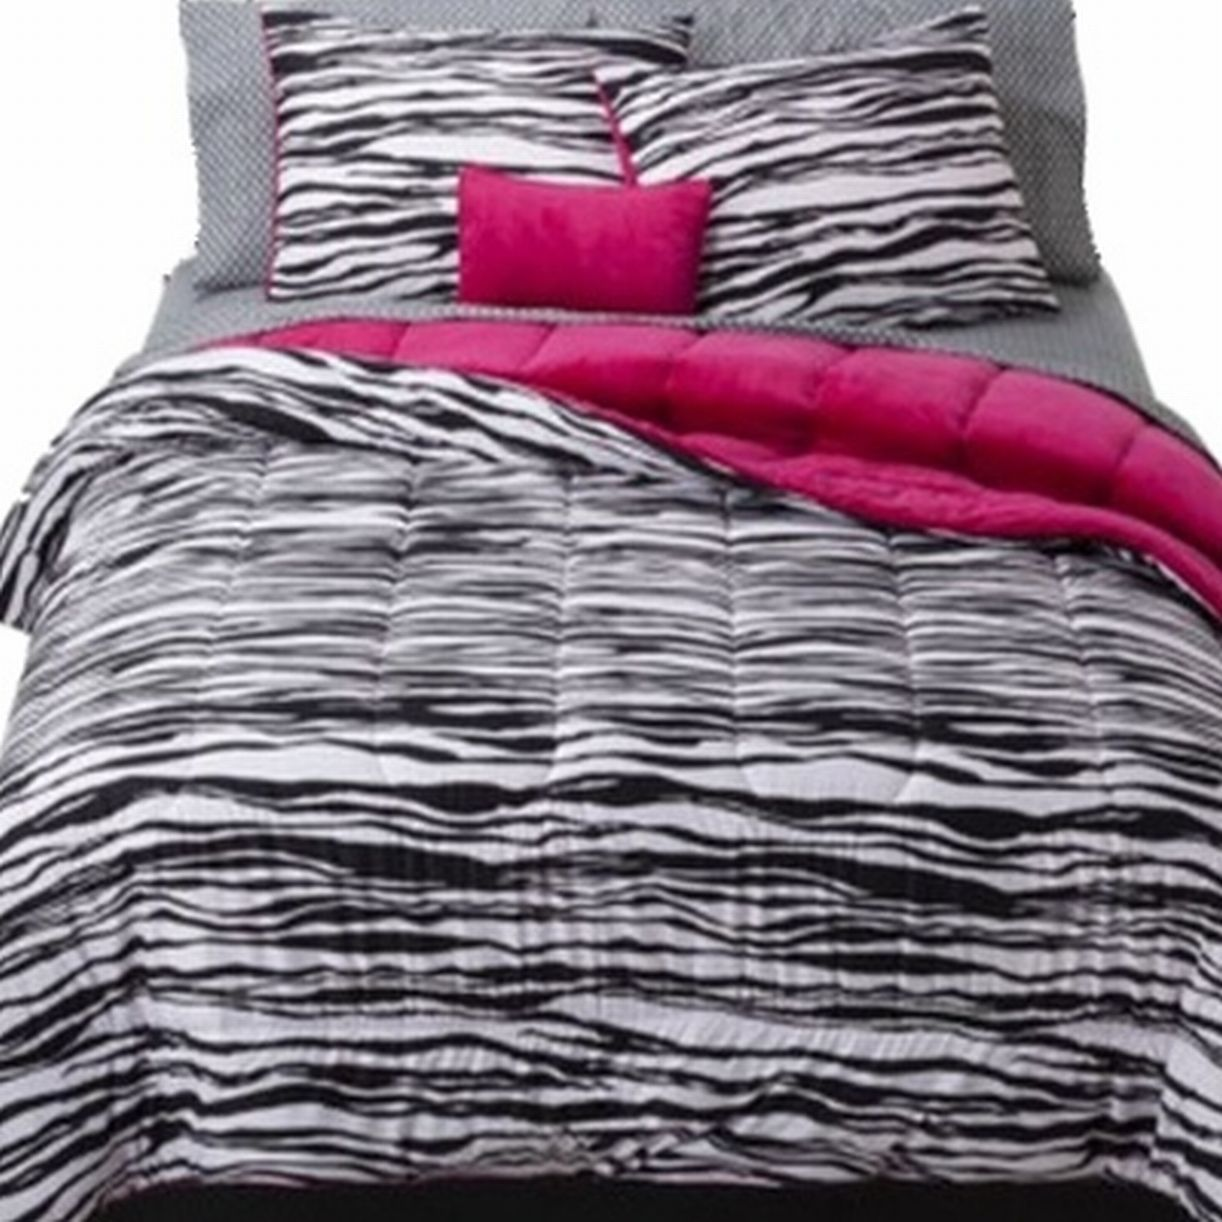 Full Bed In Bag Black Zebra Stripe Comforter Sheet Shams & Pillow